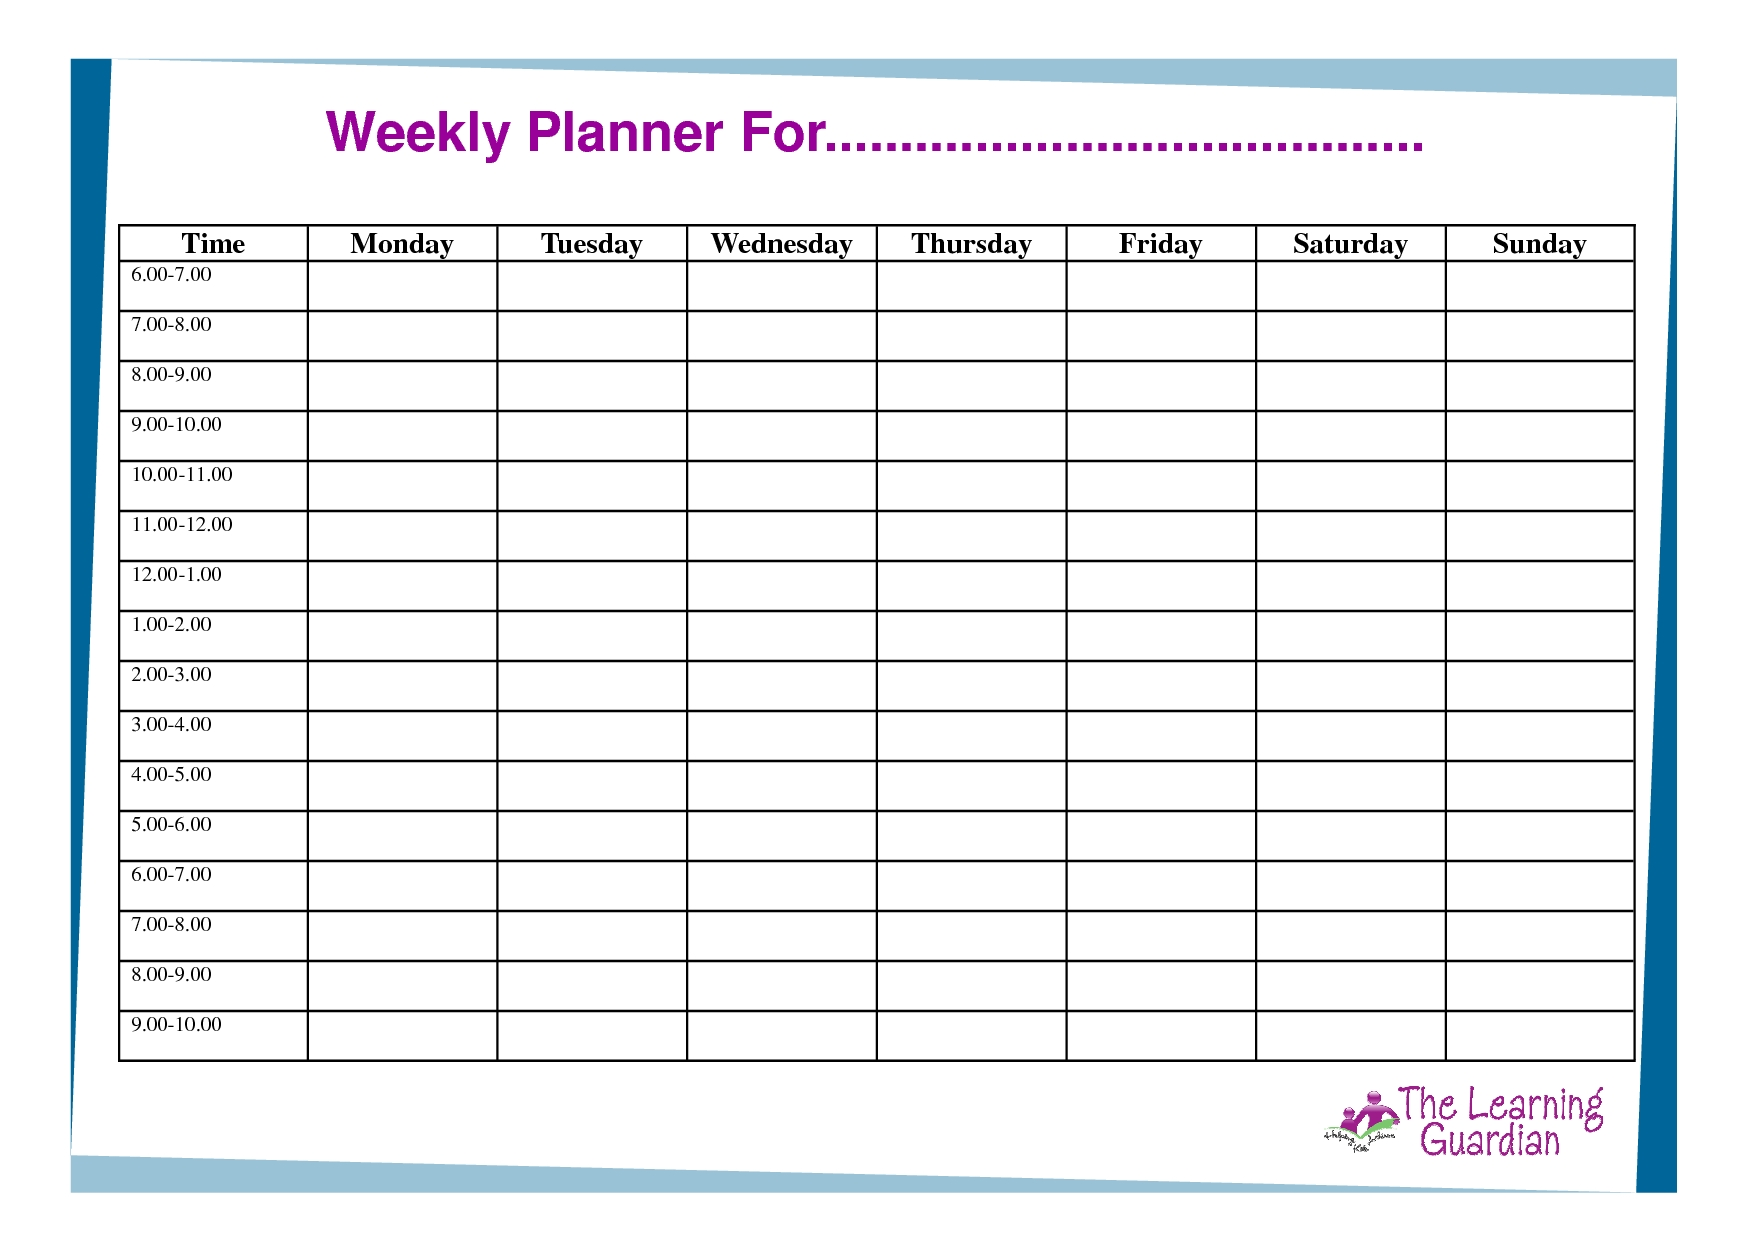 Free Printable Weekly Calendar Templates | Weekly Planner-Monday To Friday 2 Week Calendar Template